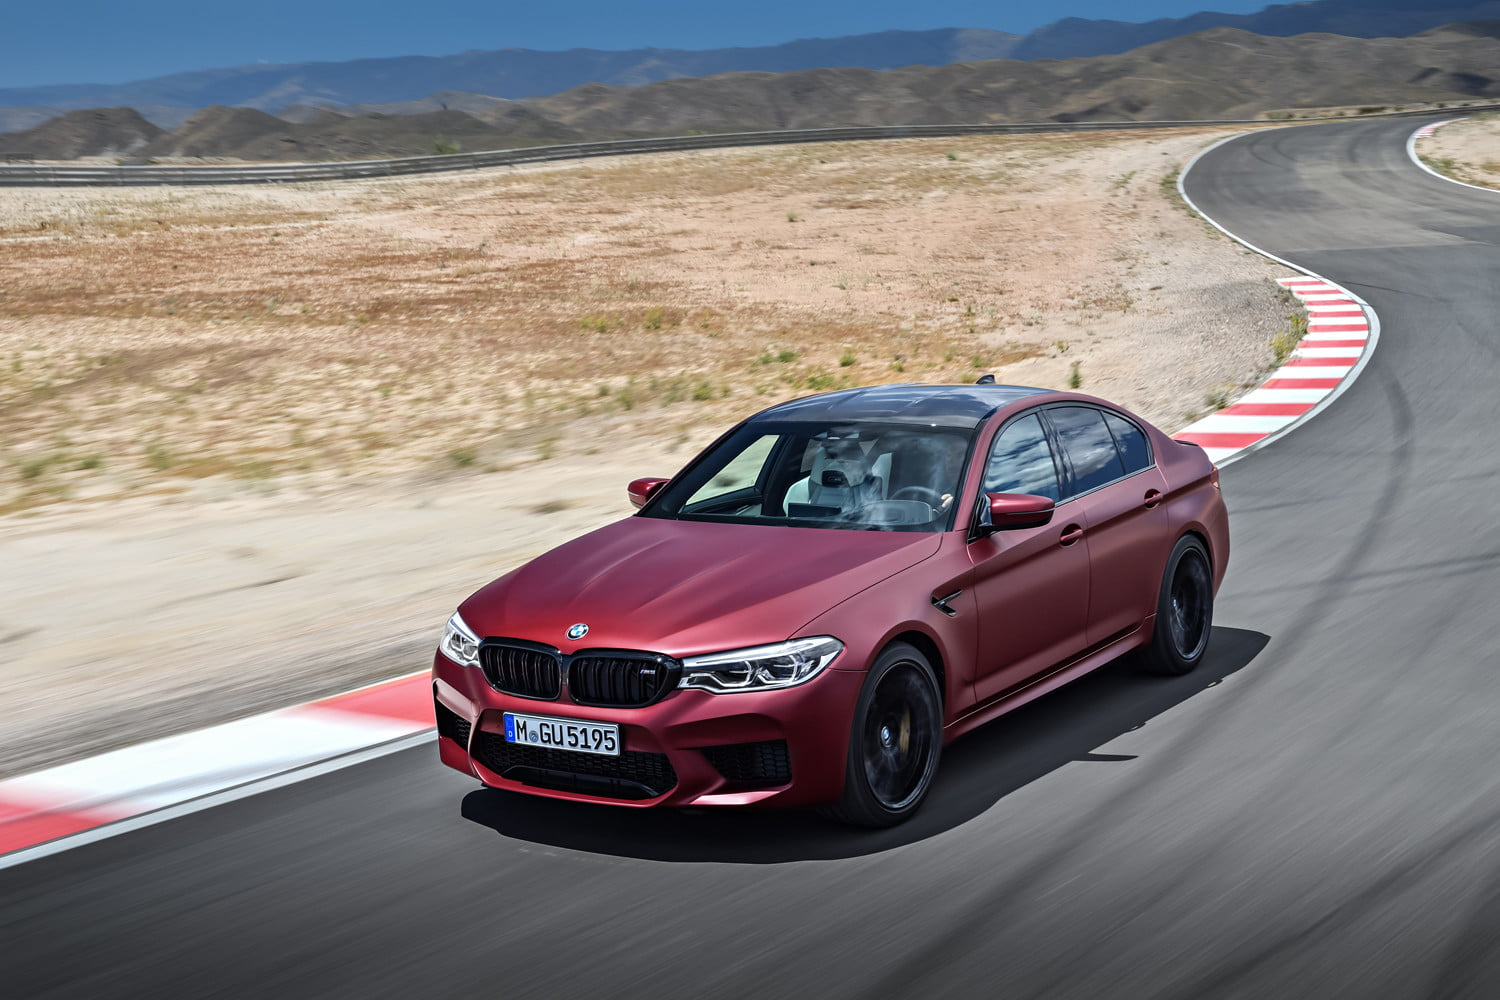 Word On The Street Is That Bmw S Renowned M Division Will Be Hopping Hybrid Electrification Bandwagon With Its Performance Cars